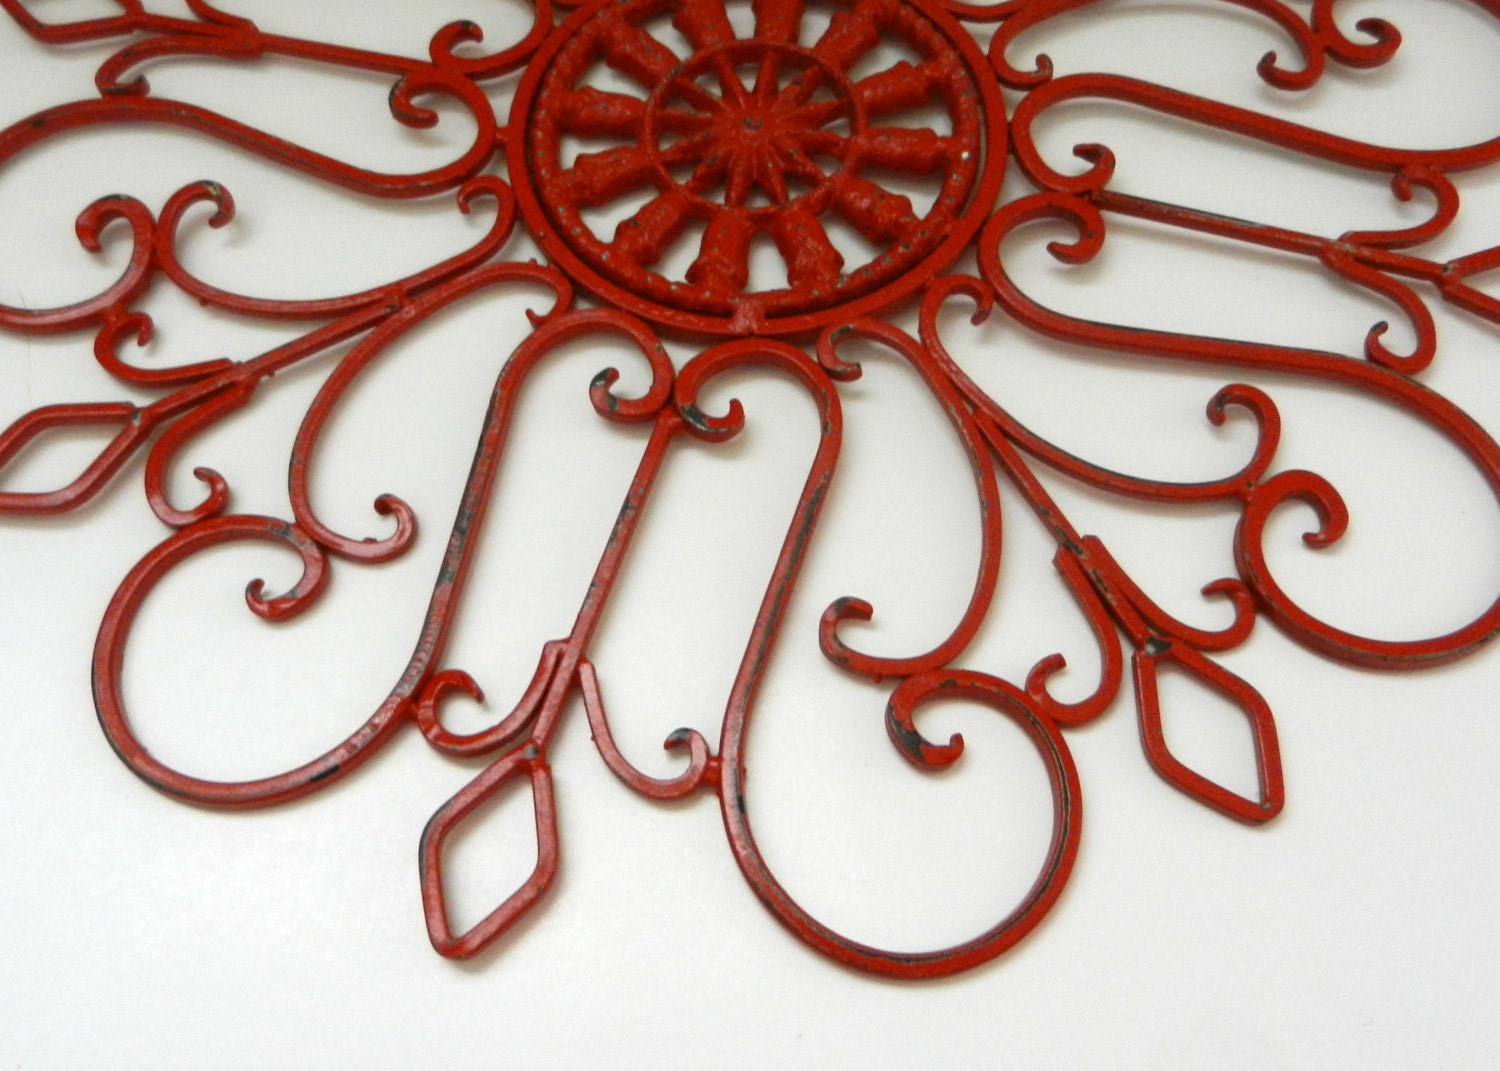 Metal garden decor wall medallion fence decoration yard art for Red wall art